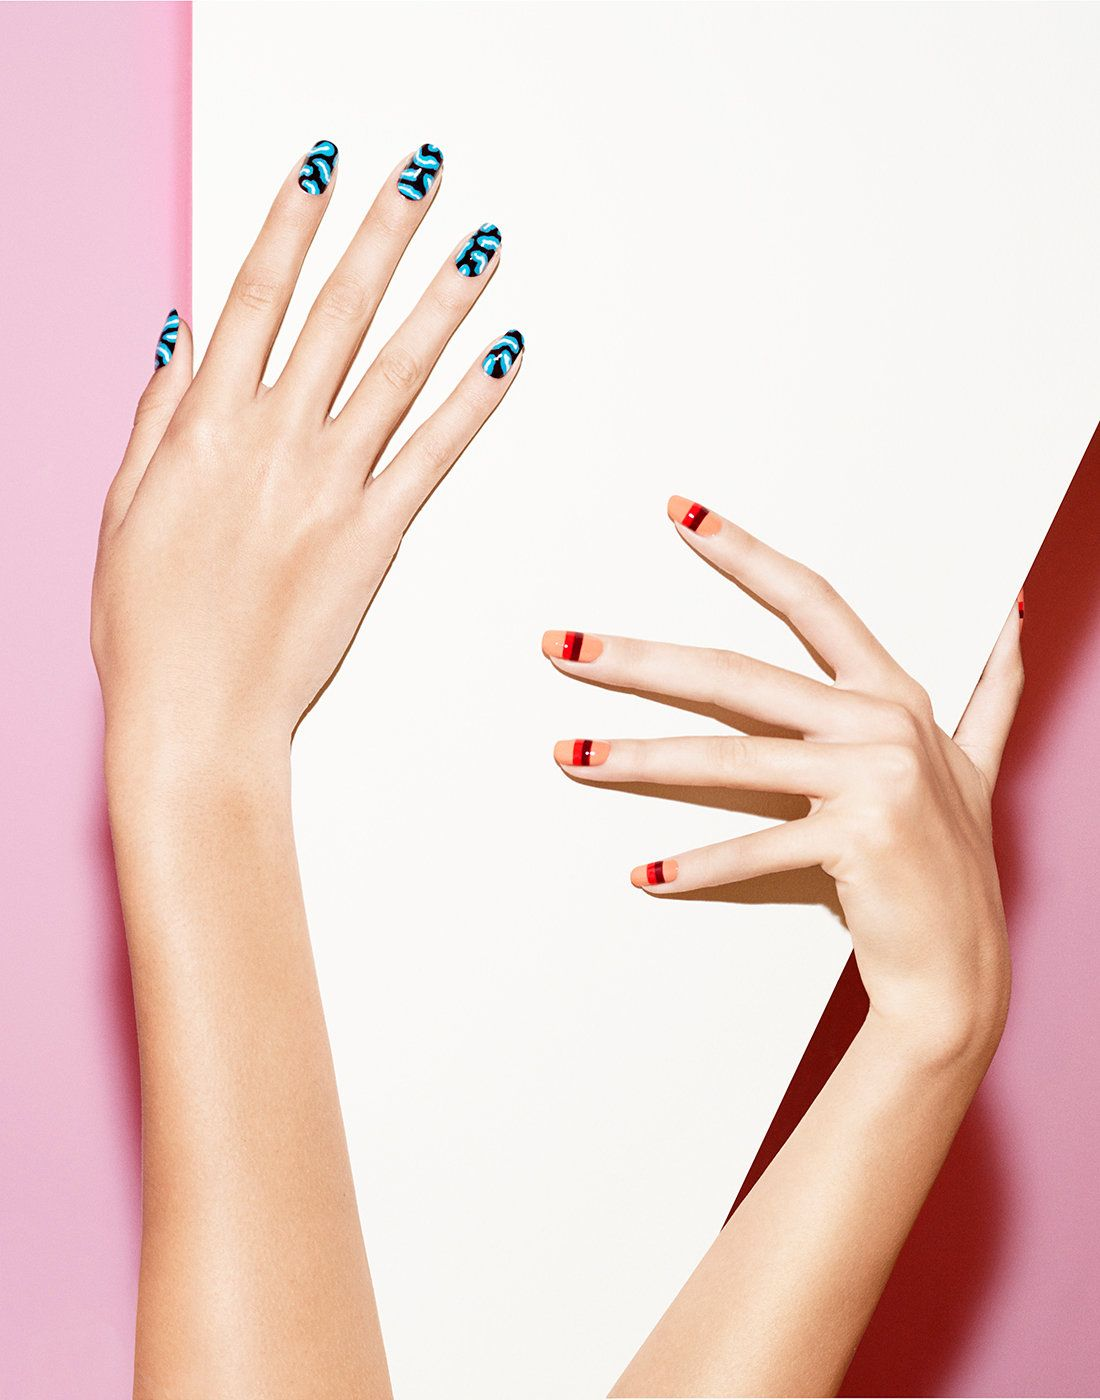 What's Next for Nail Art, According to a Top Fashion WeekManicurist